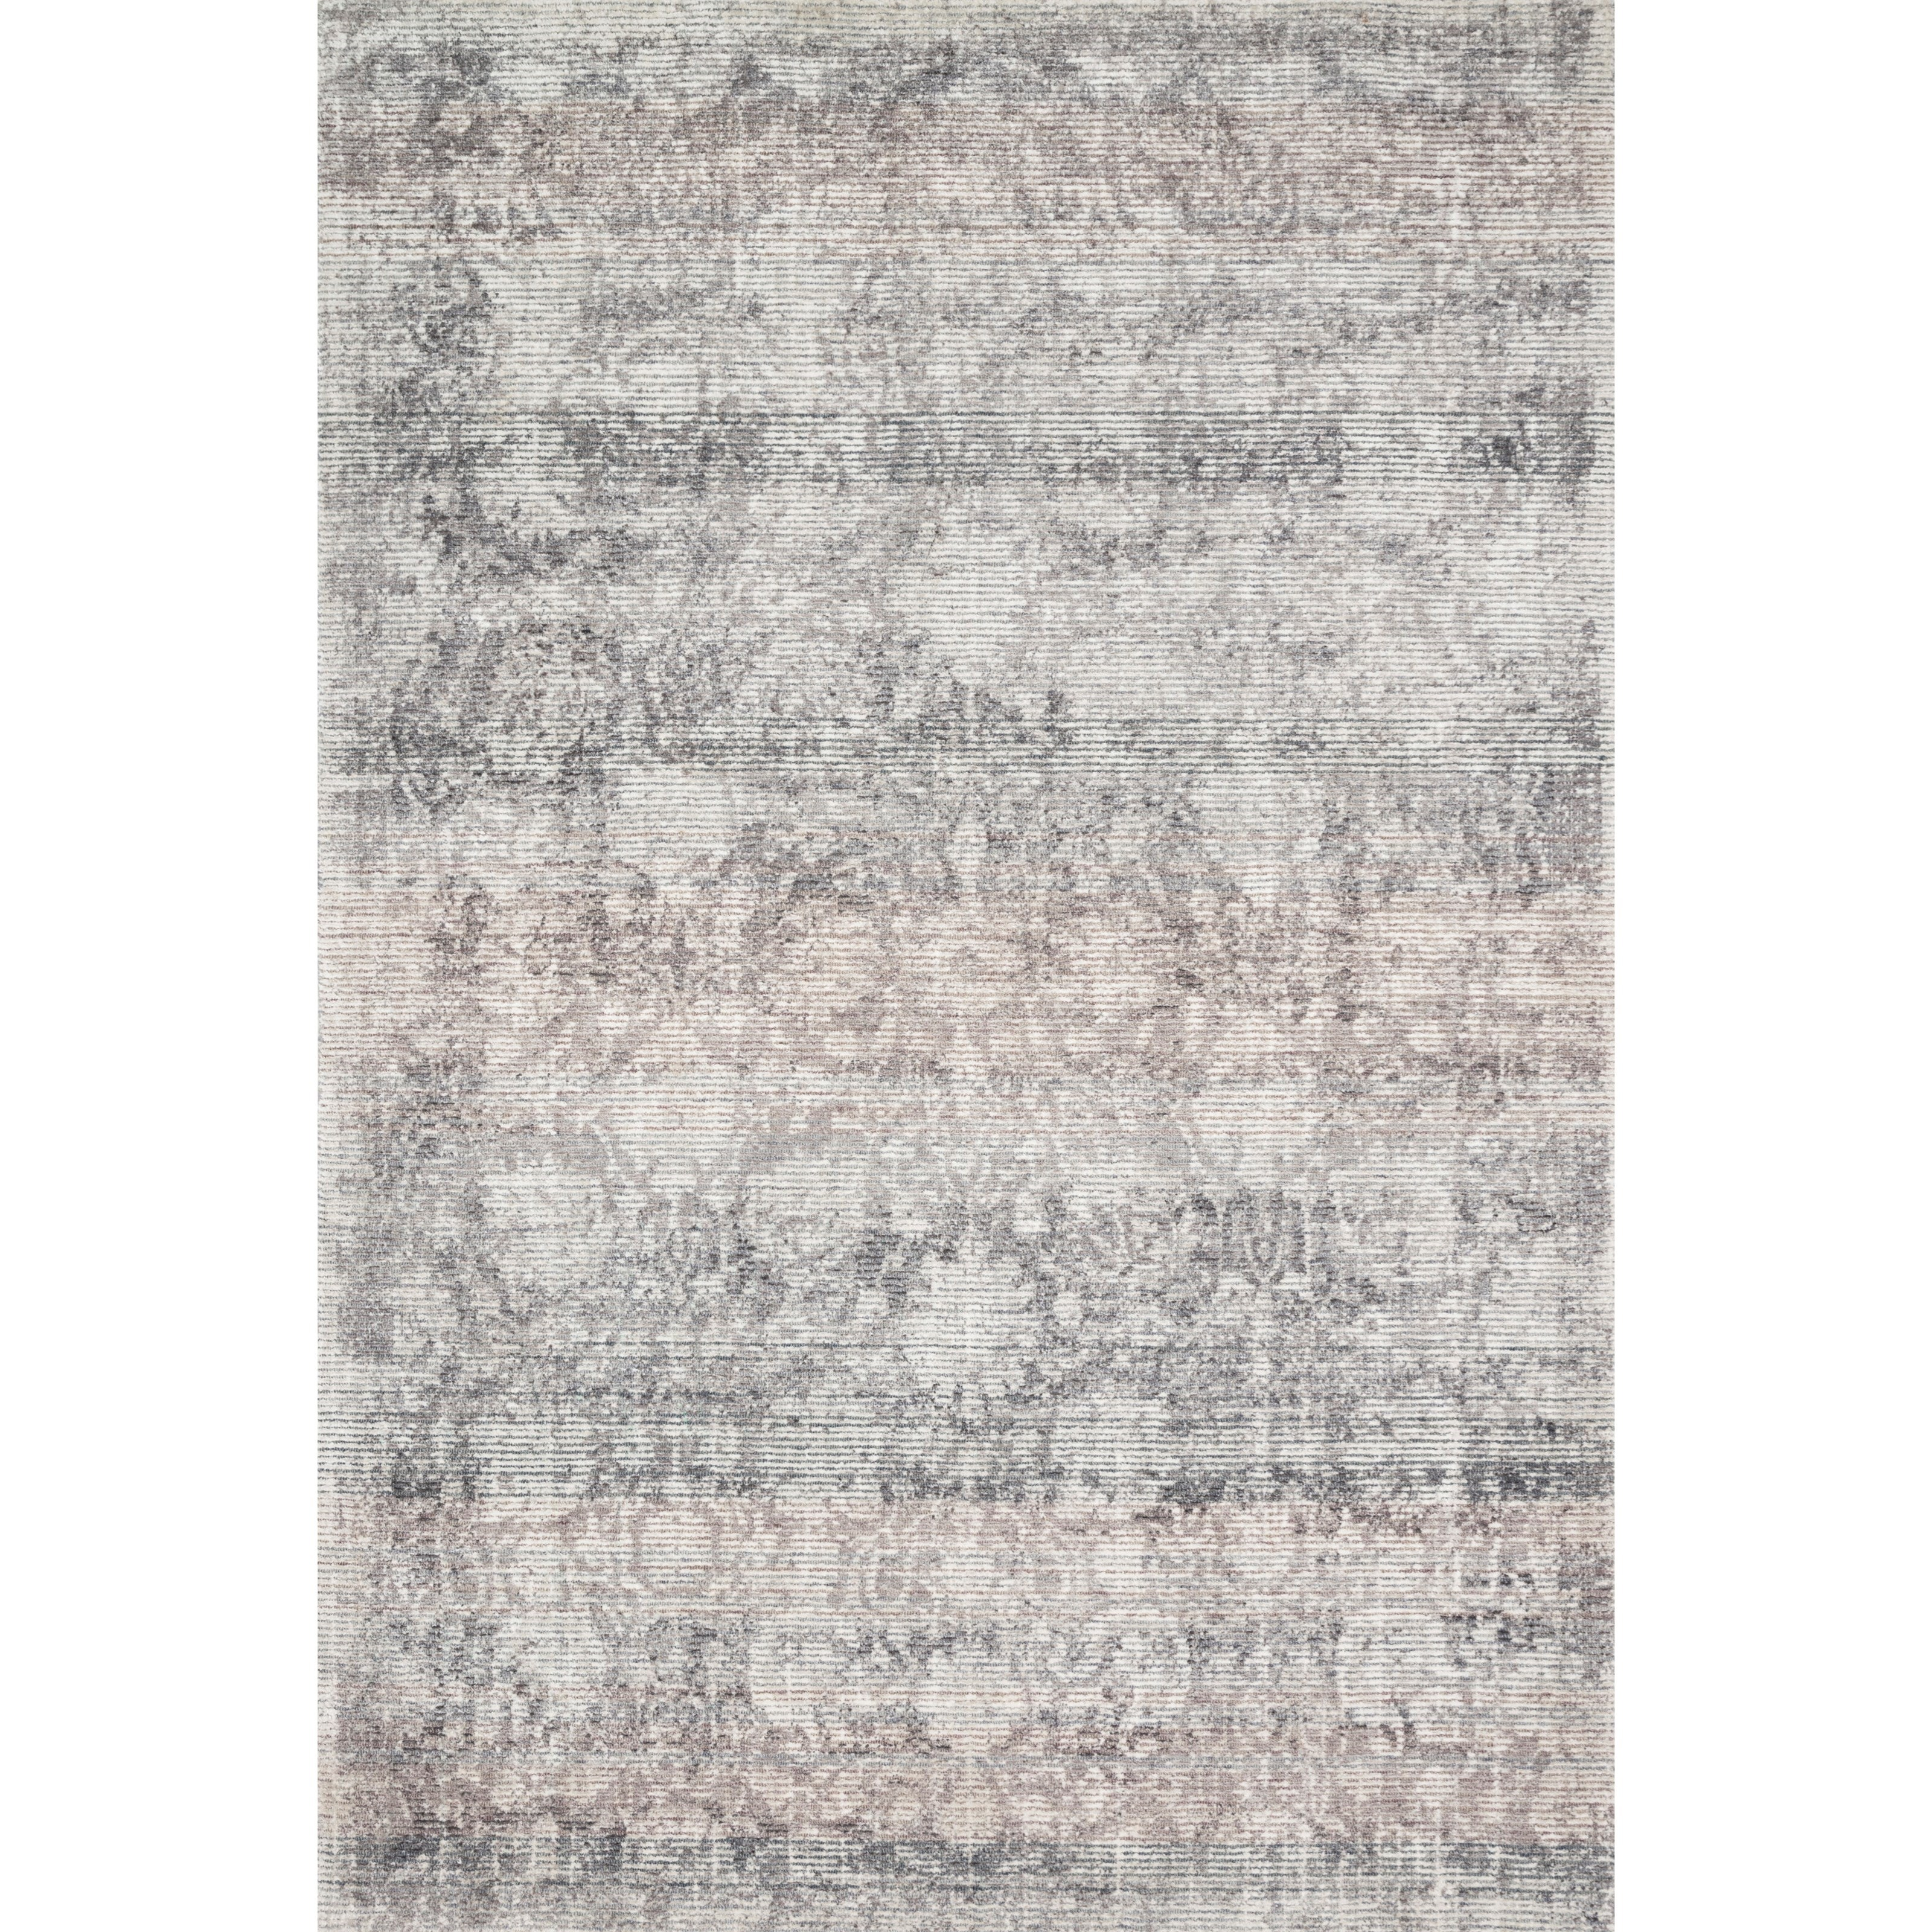 "Rumi 2'6"" x 7'6"" Pewter Rug by Loloi Rugs at Sprintz Furniture"